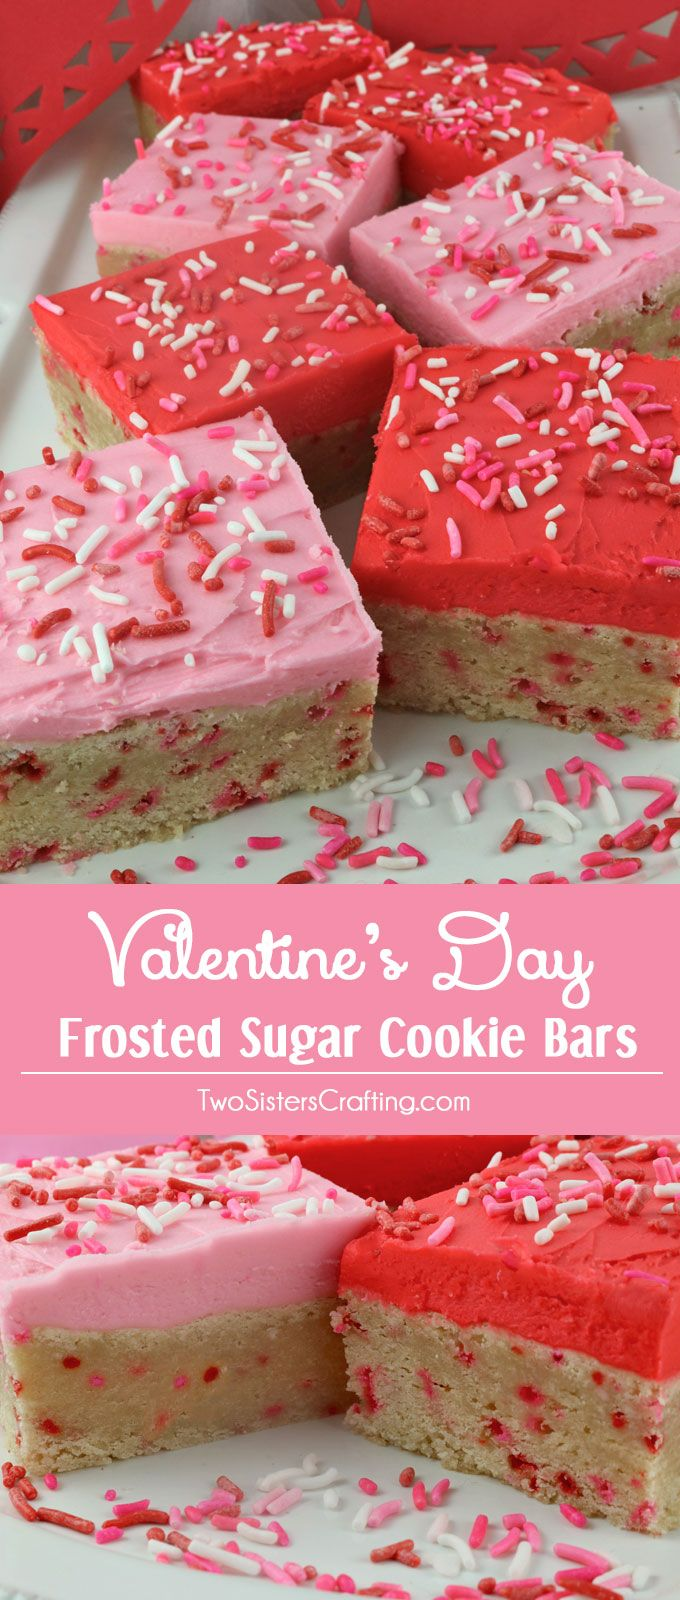 A unique take on a Frosted Sugar Cookie, these Valentine's Day Frosted Sugar Cookie Bars are delicious, easy to make and will be an instant family favorite Valentines Dessert. Make your family a Valentine's Day Treat that they are sure to love! Pin this yummy Valentine's Cookie Recipe now and follow us for more more great Valentine's Day Food ideas.